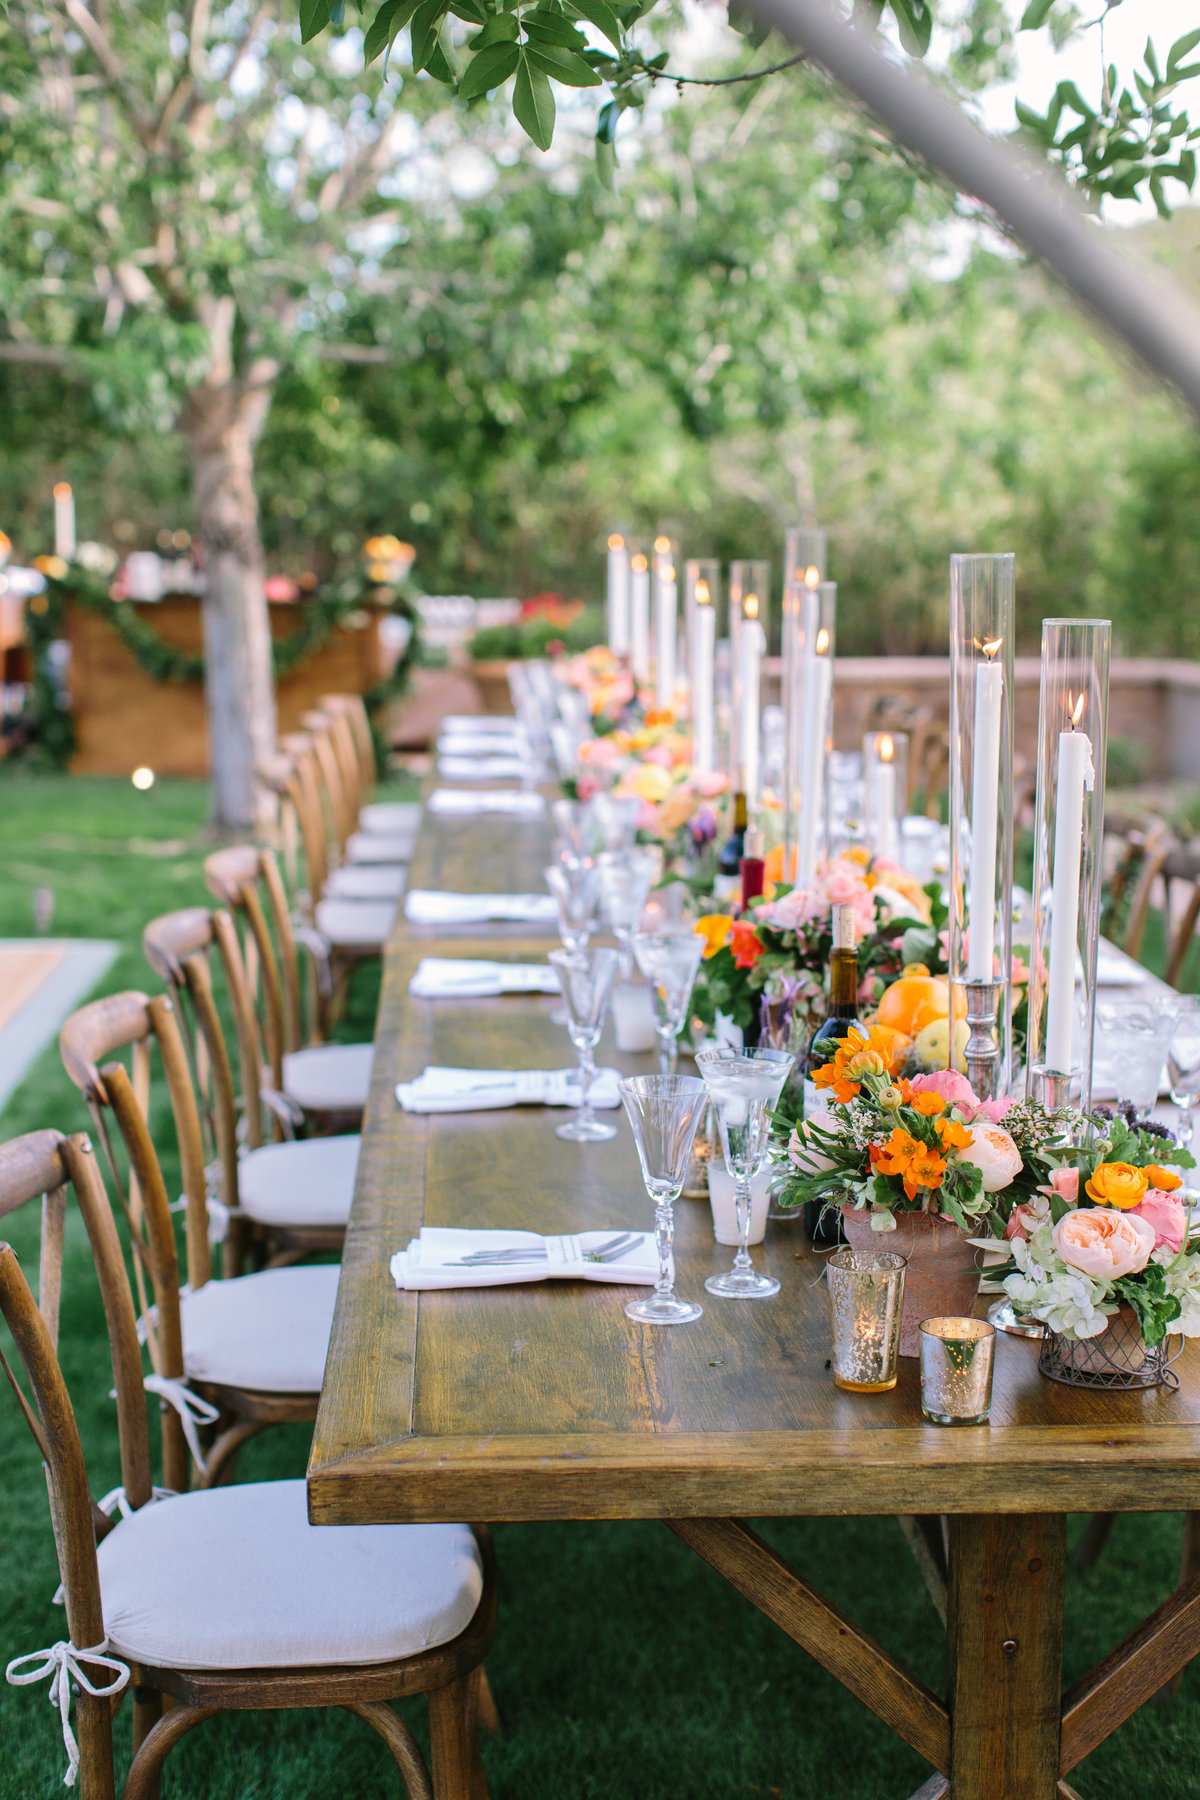 Paradise Valley Wedding Scottsdale Wedding Eddie V's wedding Ashley Gain Weddings Jay Worsley videography Arizona photographer Flower studio florals Garden wedding Estate wedding Celebrations in paper La tavola linen Scottsdale bible church wedding